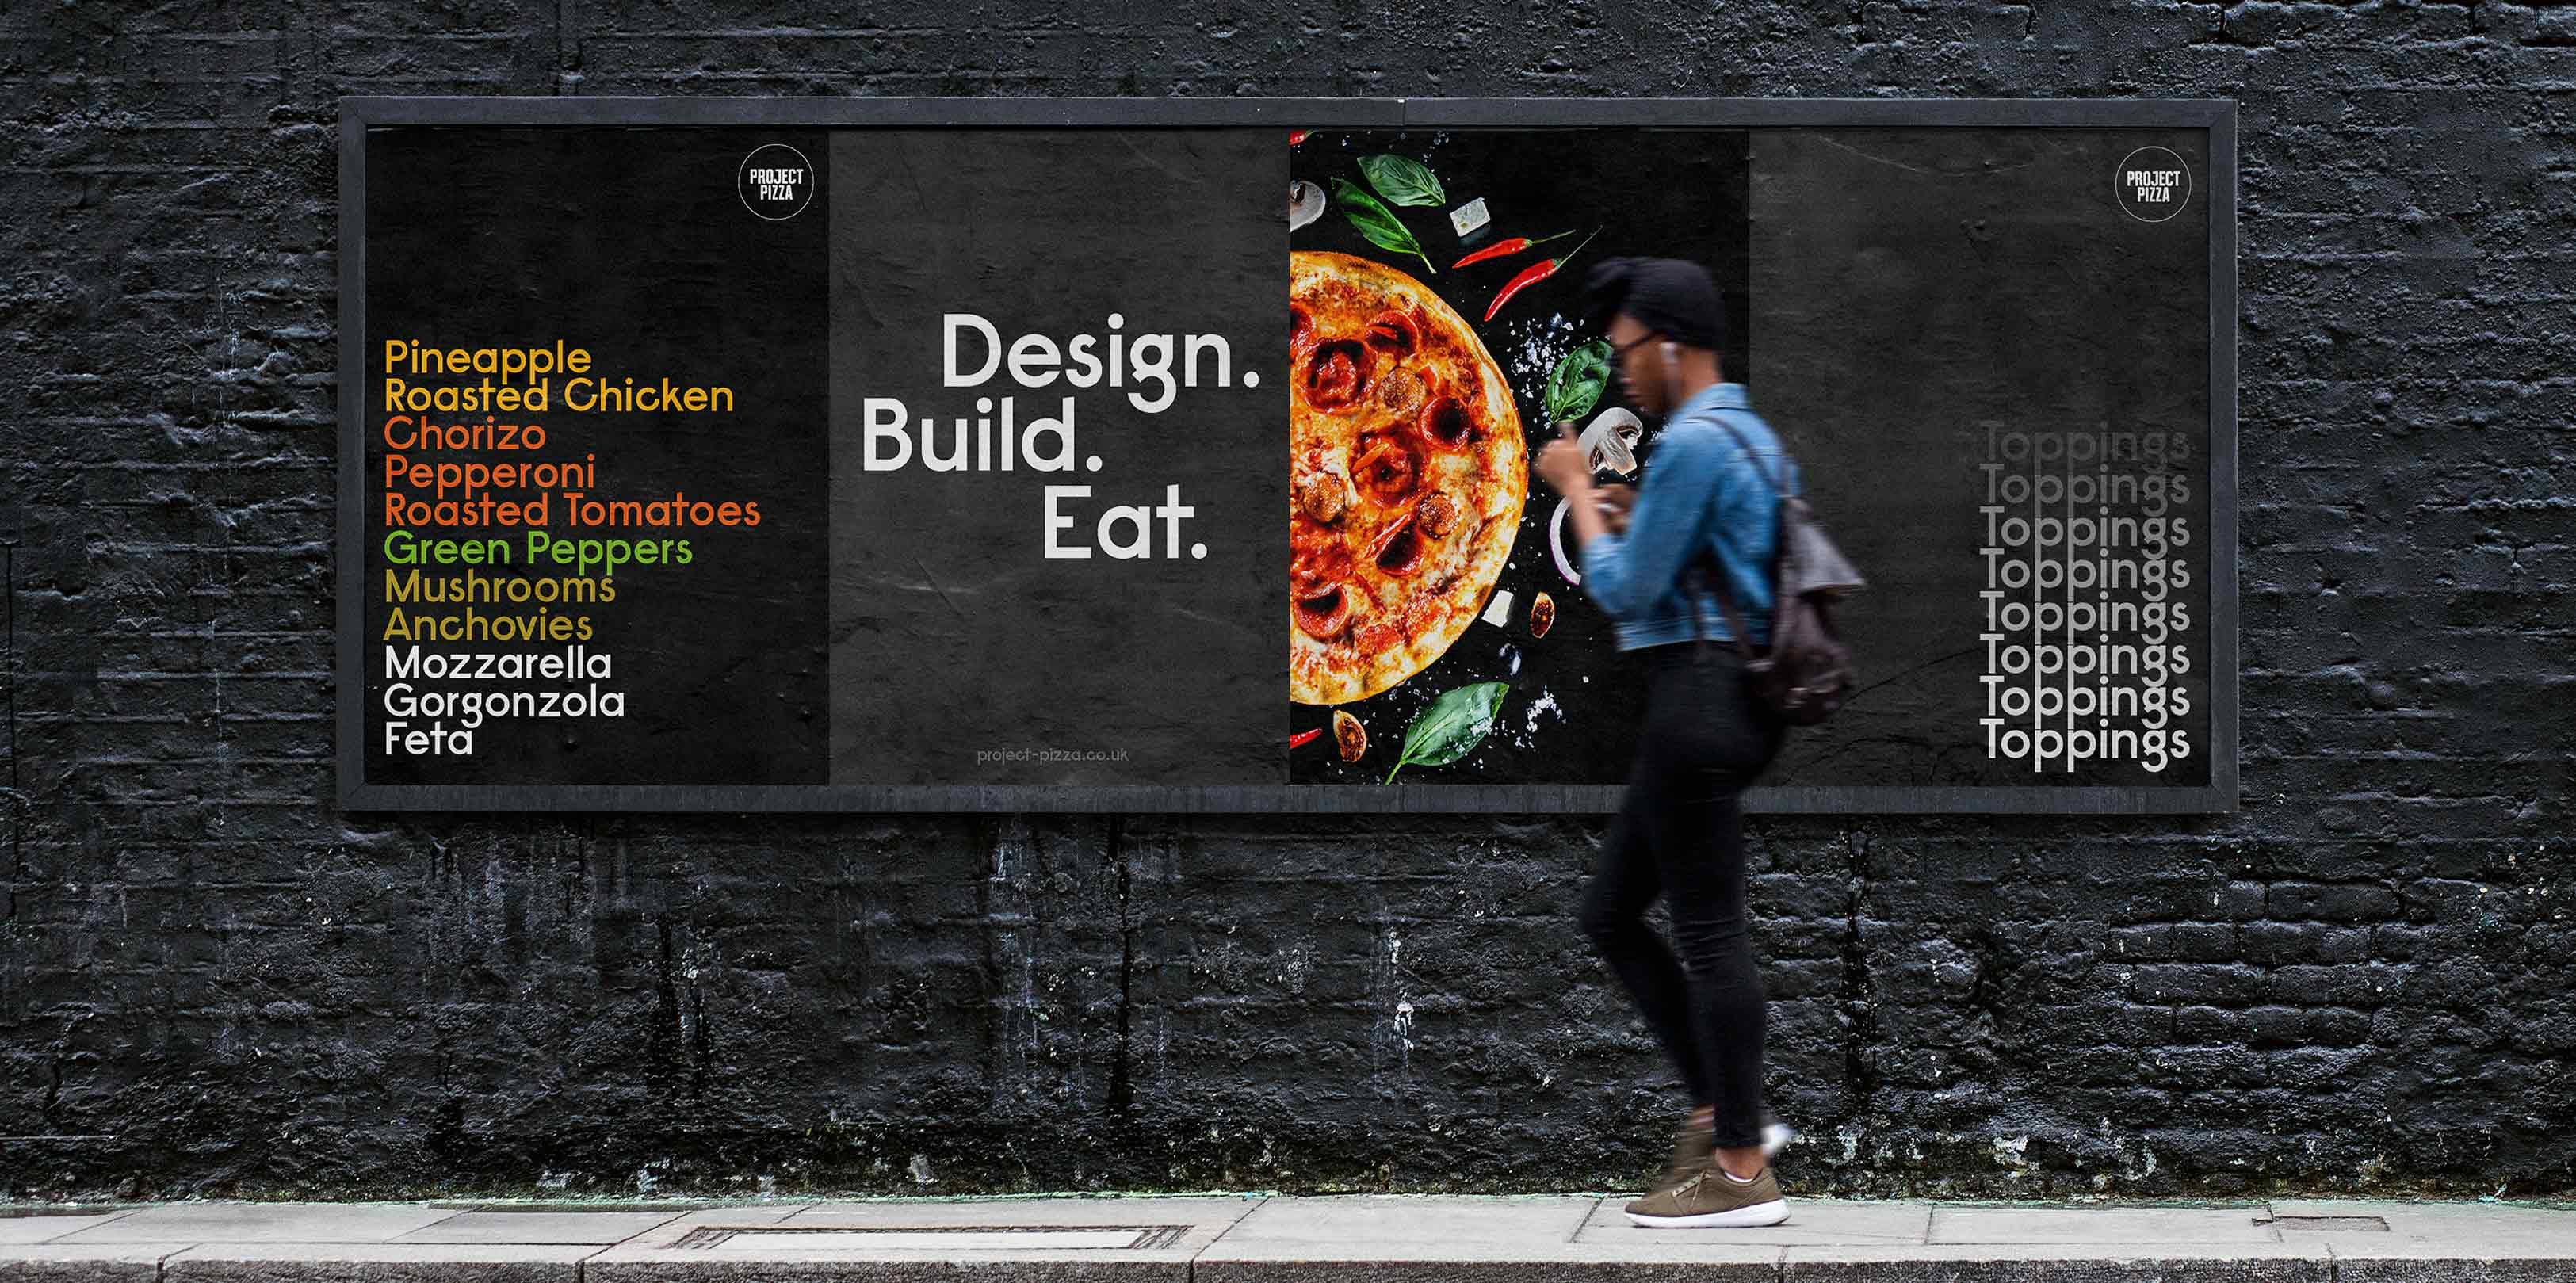 Project Pizza poster design on street